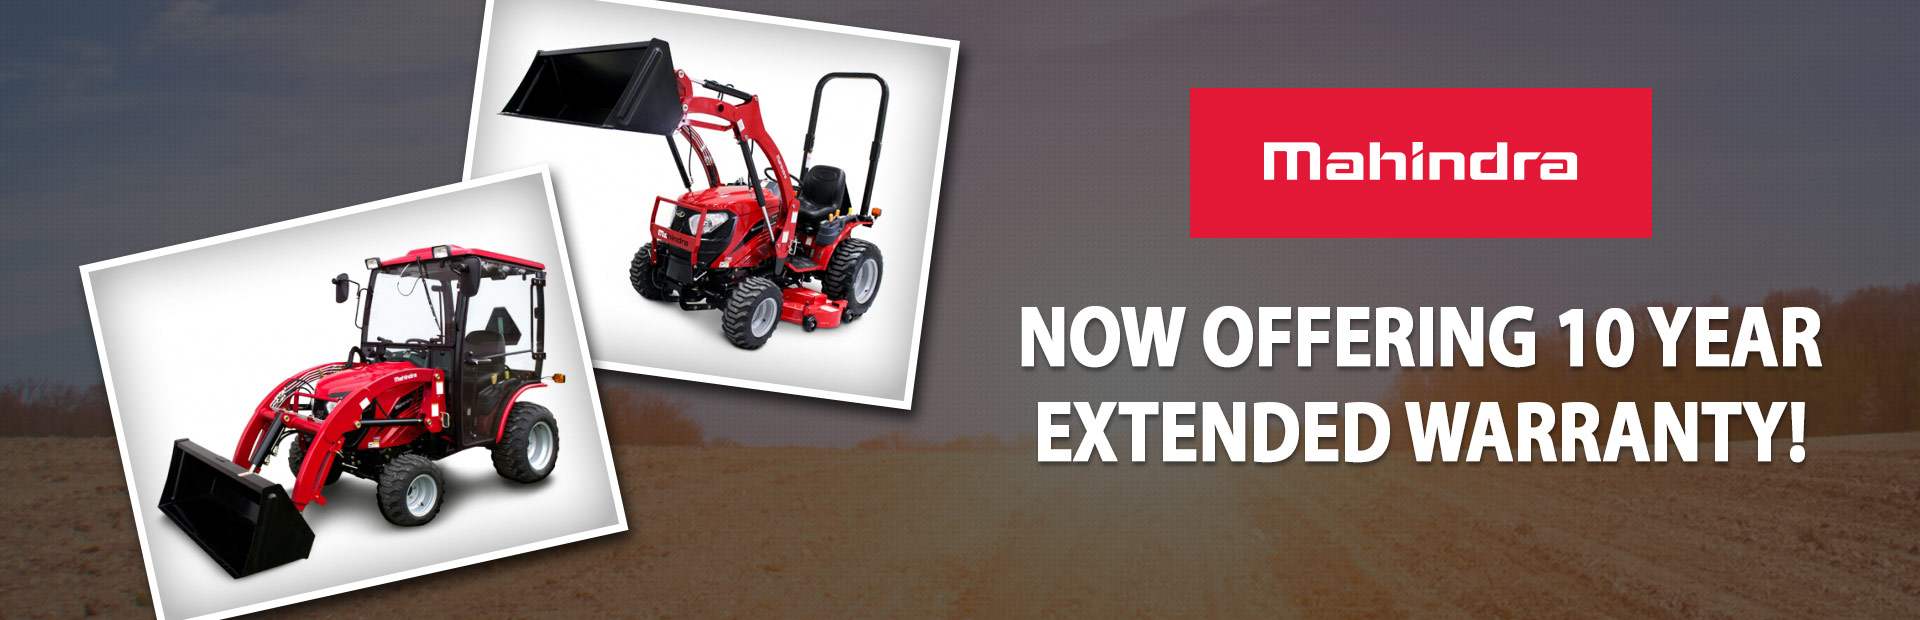 Mahindra is now offering a 10 year extended warranty. Click here to view the models.